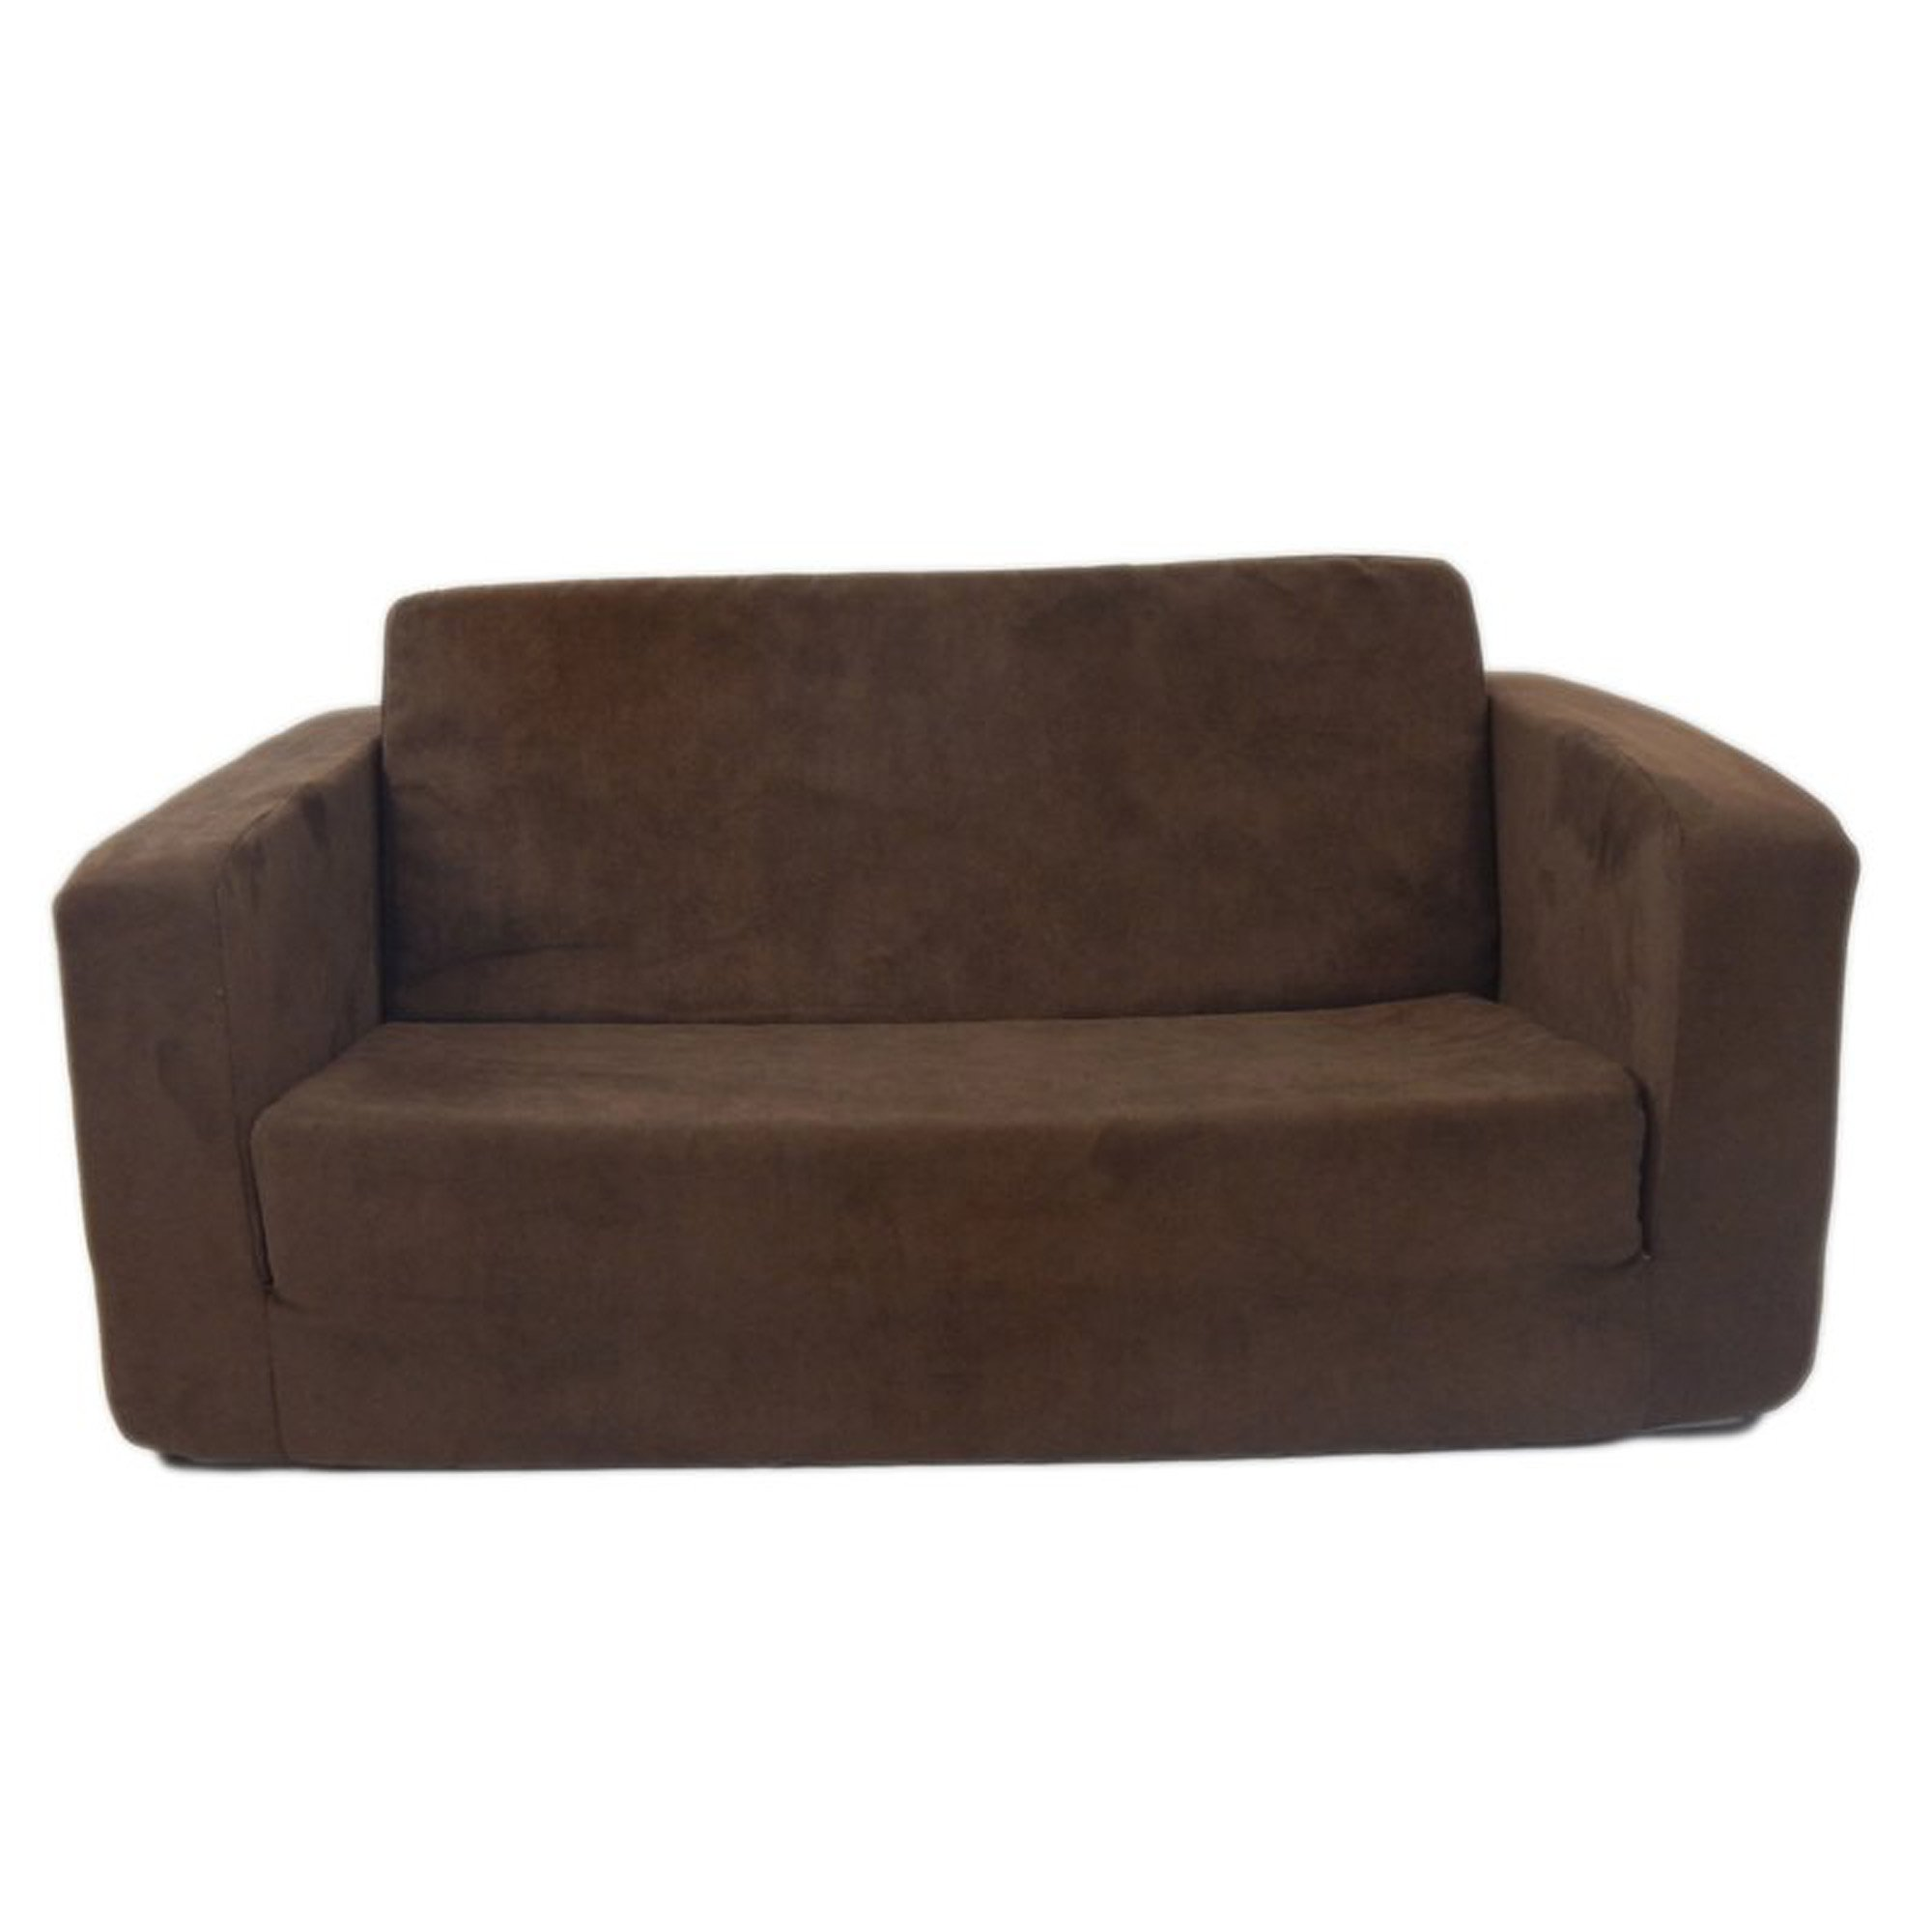 Flip Open Sofa For Kids - Convertible Children Soft Upholstered Futon Bed - Toddler Room - Boys and Girls Colors (Chocolate)